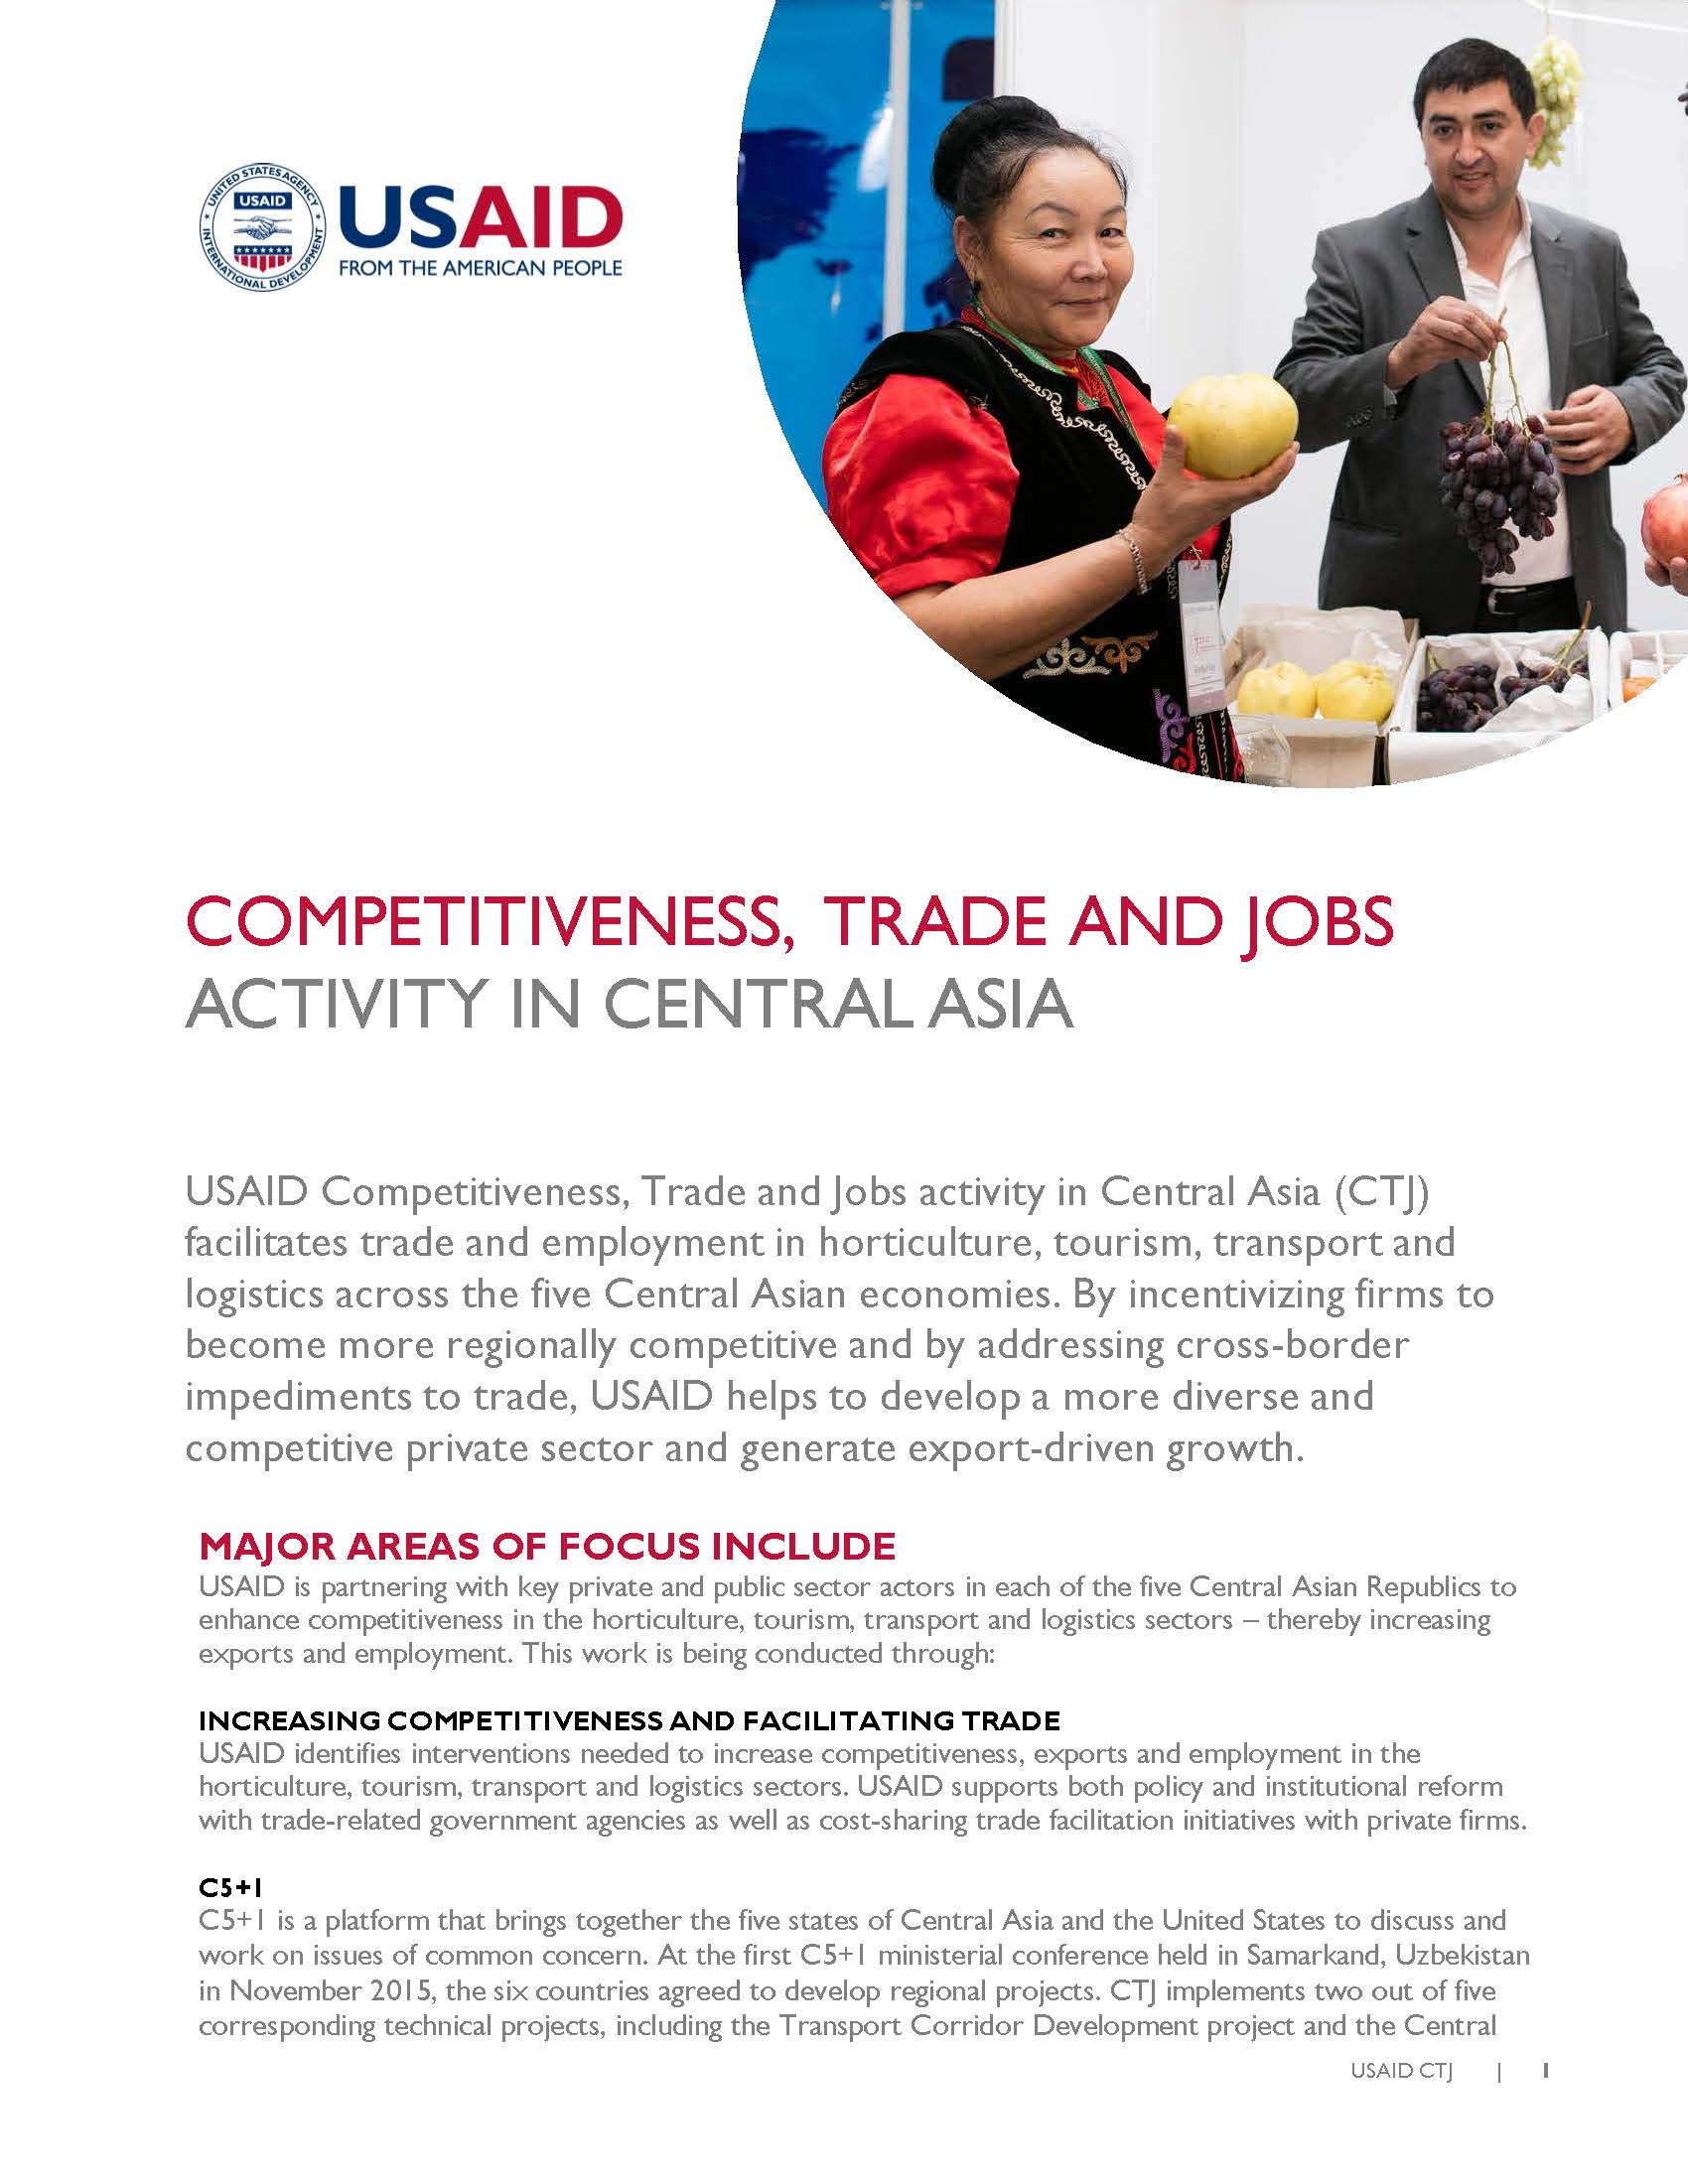 USAID Competitiveness, Trade and Jobs Activity in Central Asia